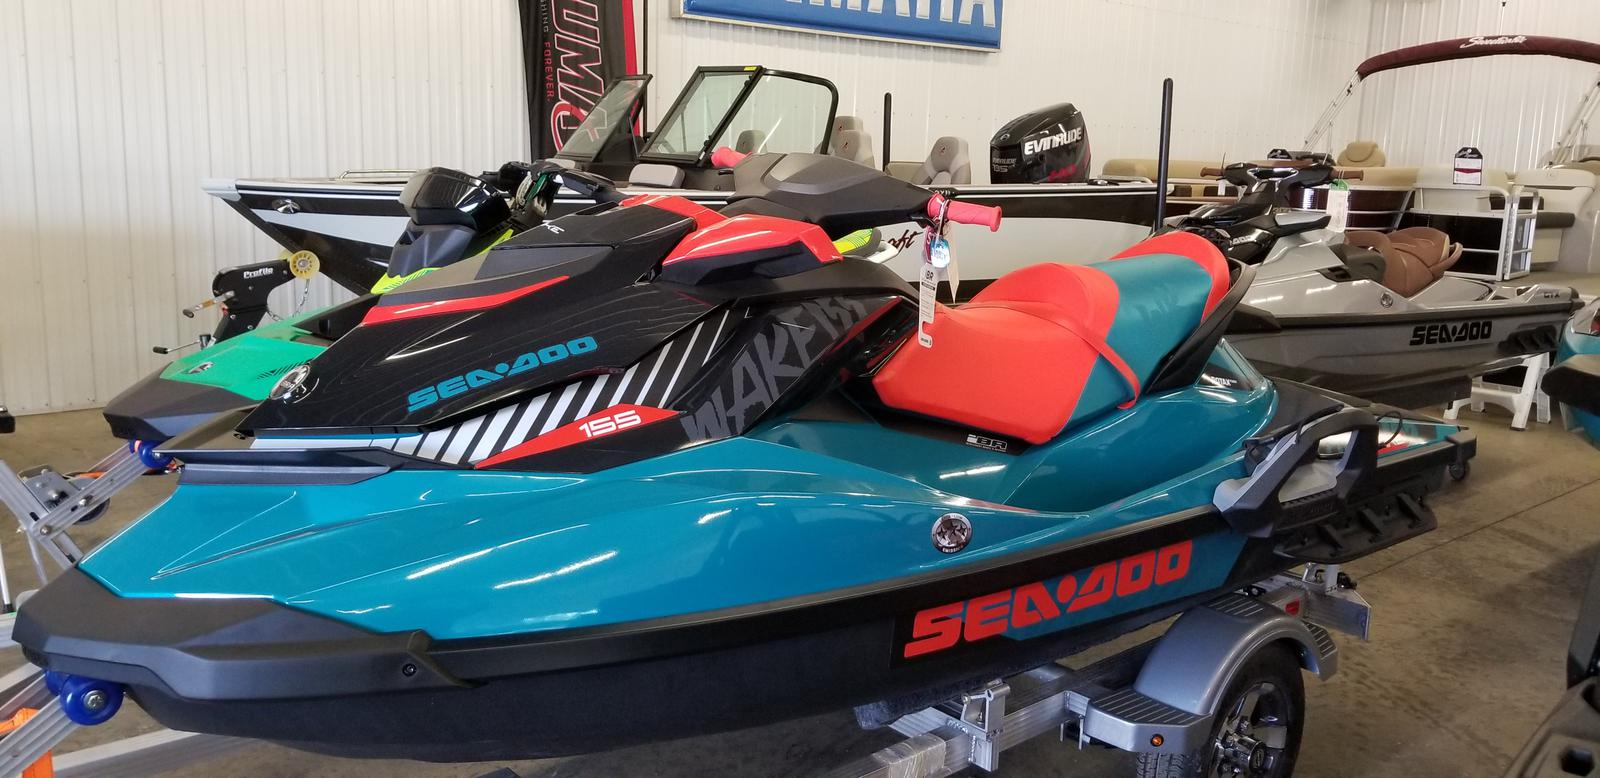 2009, 2019, 1989 and 2013 Inventory from Alumacraft, Arctic Cat